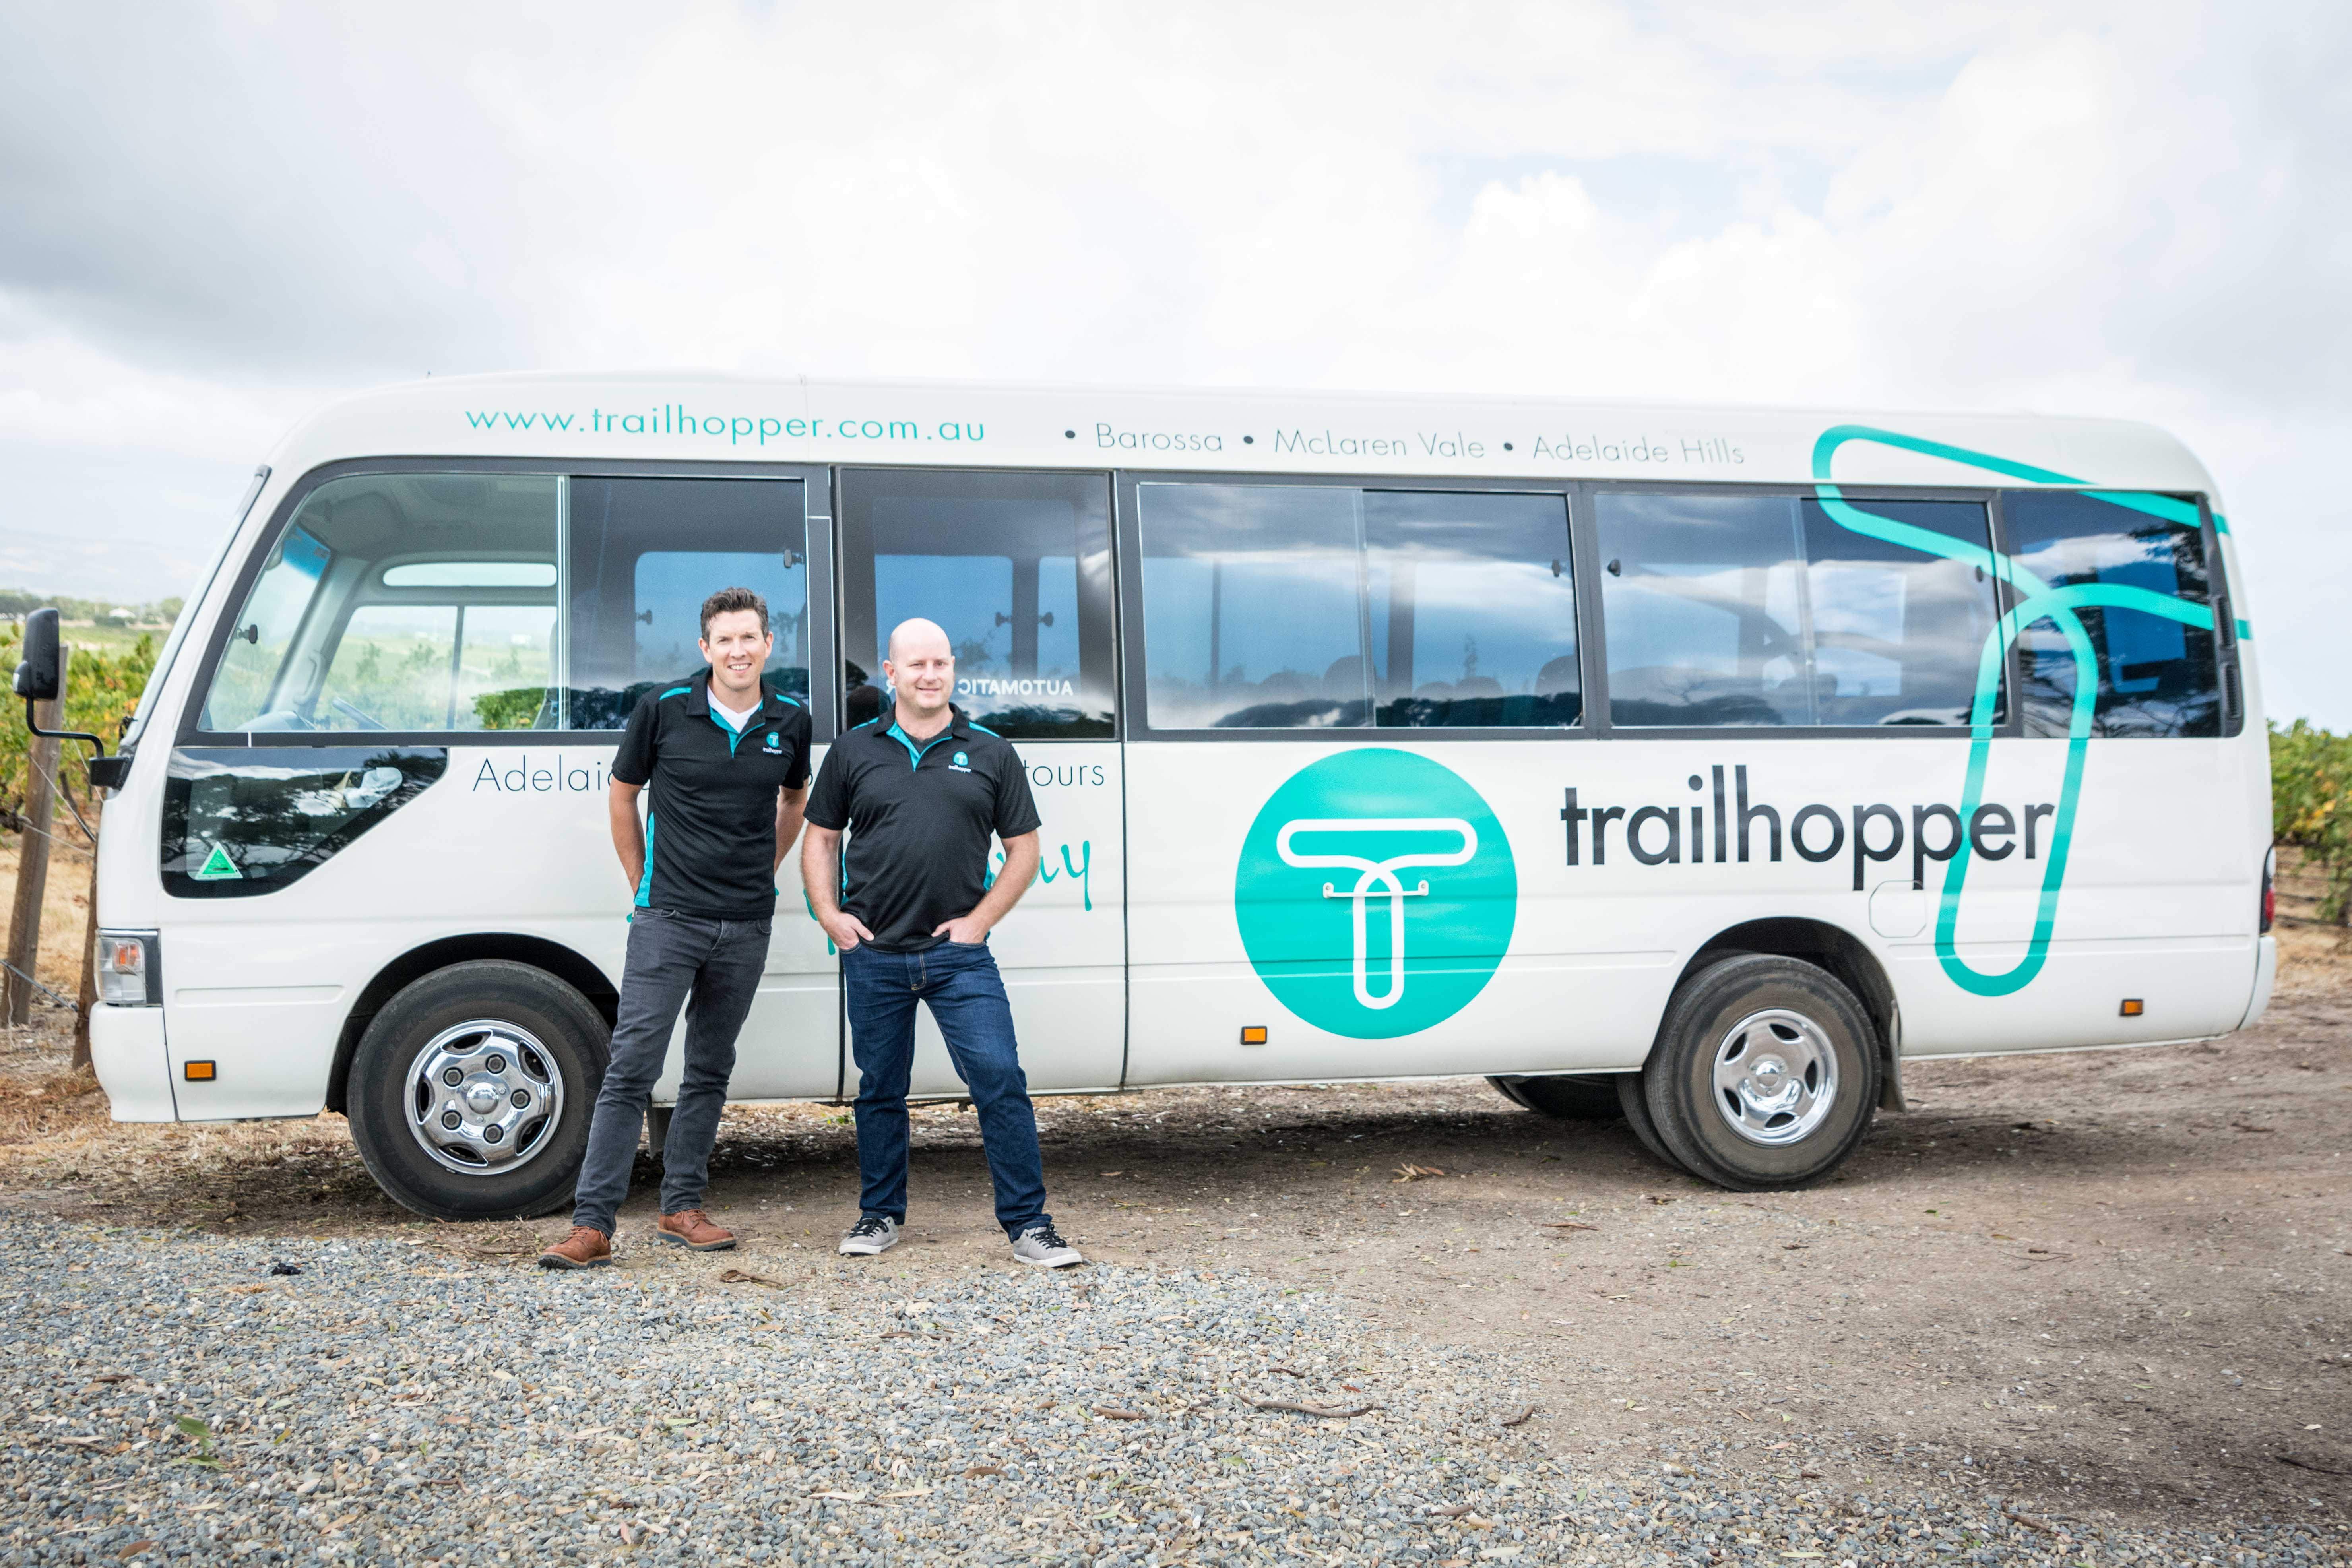 Trailhopper bus for wine tours to Barossa, McLaren Vale and Adelaide Hills